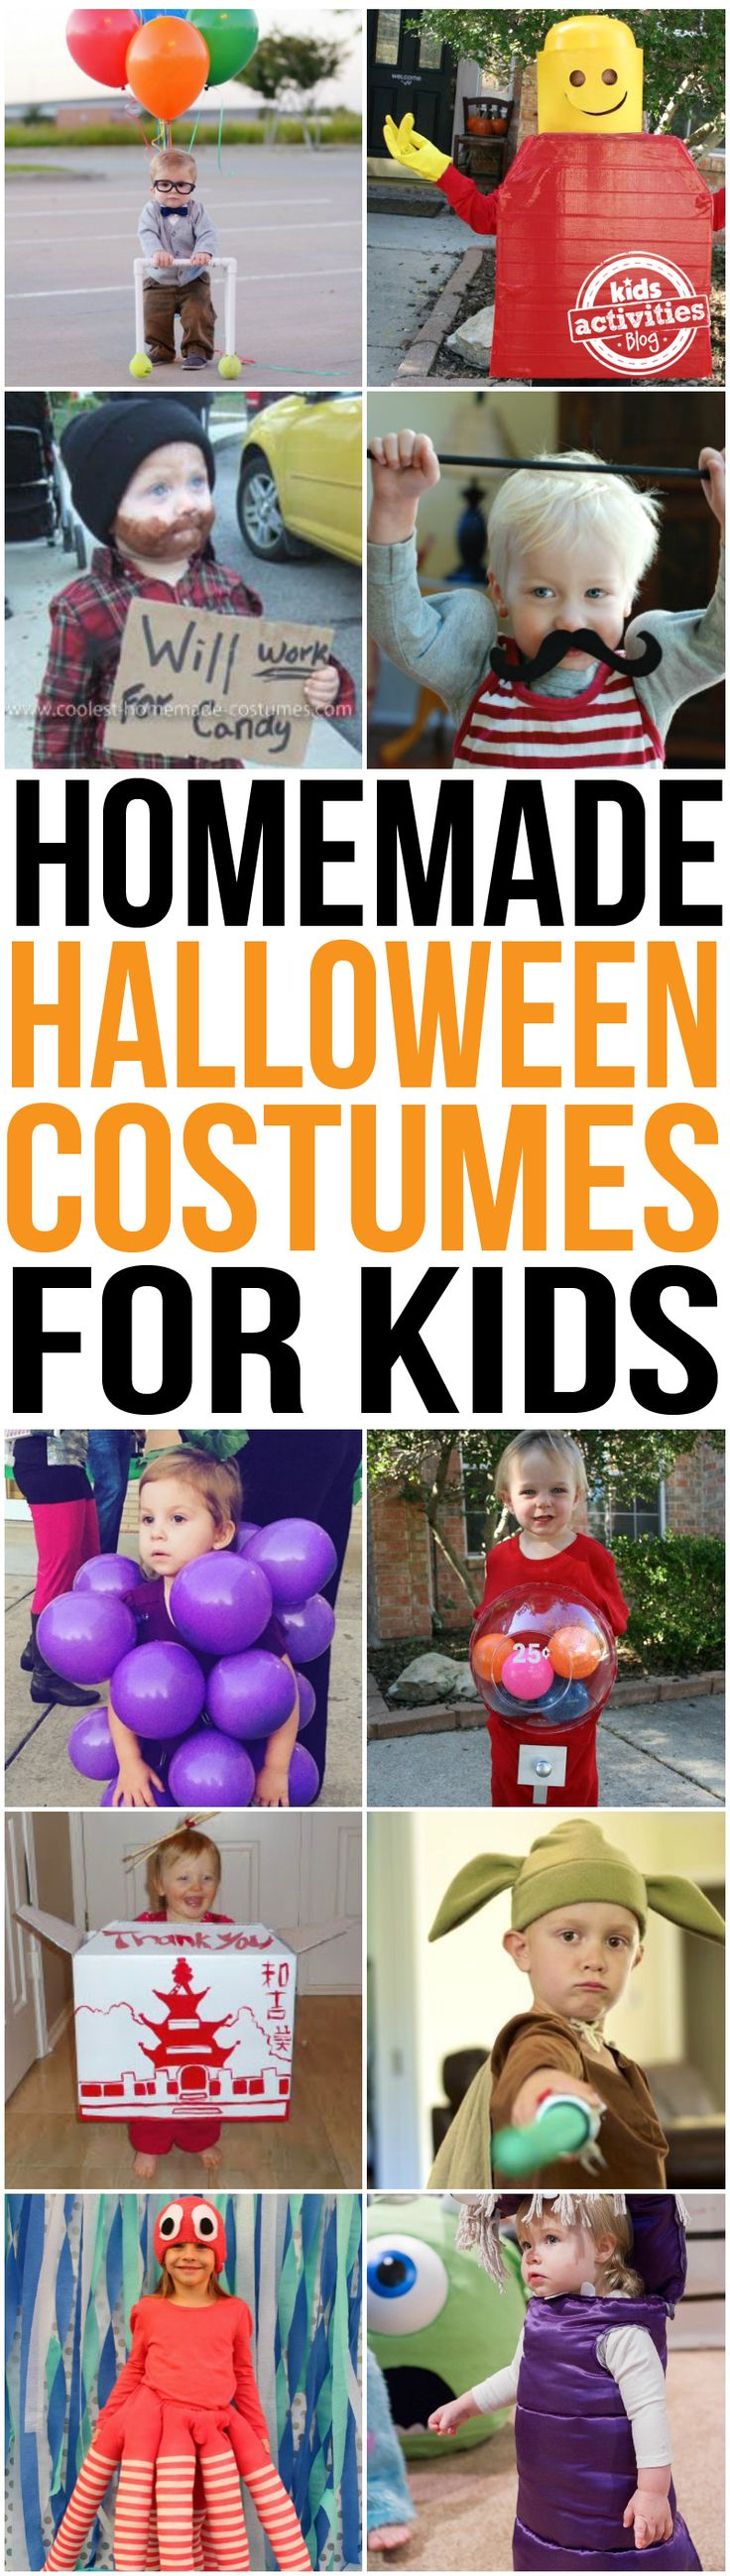 Best 25 homemade halloween costumes ideas on pinterest for Halloween decorations you can make at home